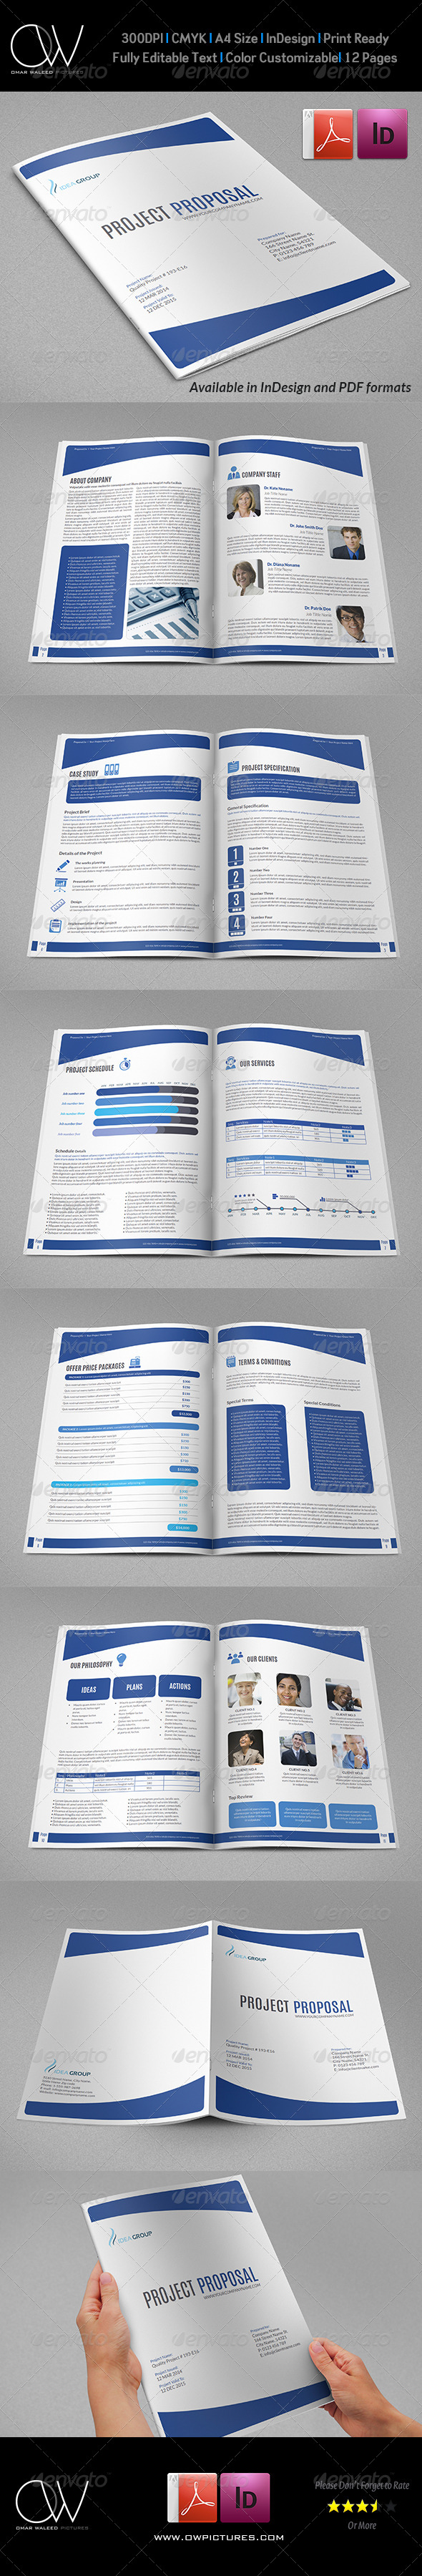 GraphicRiver Company Proposal Template 12 Pages 7328733